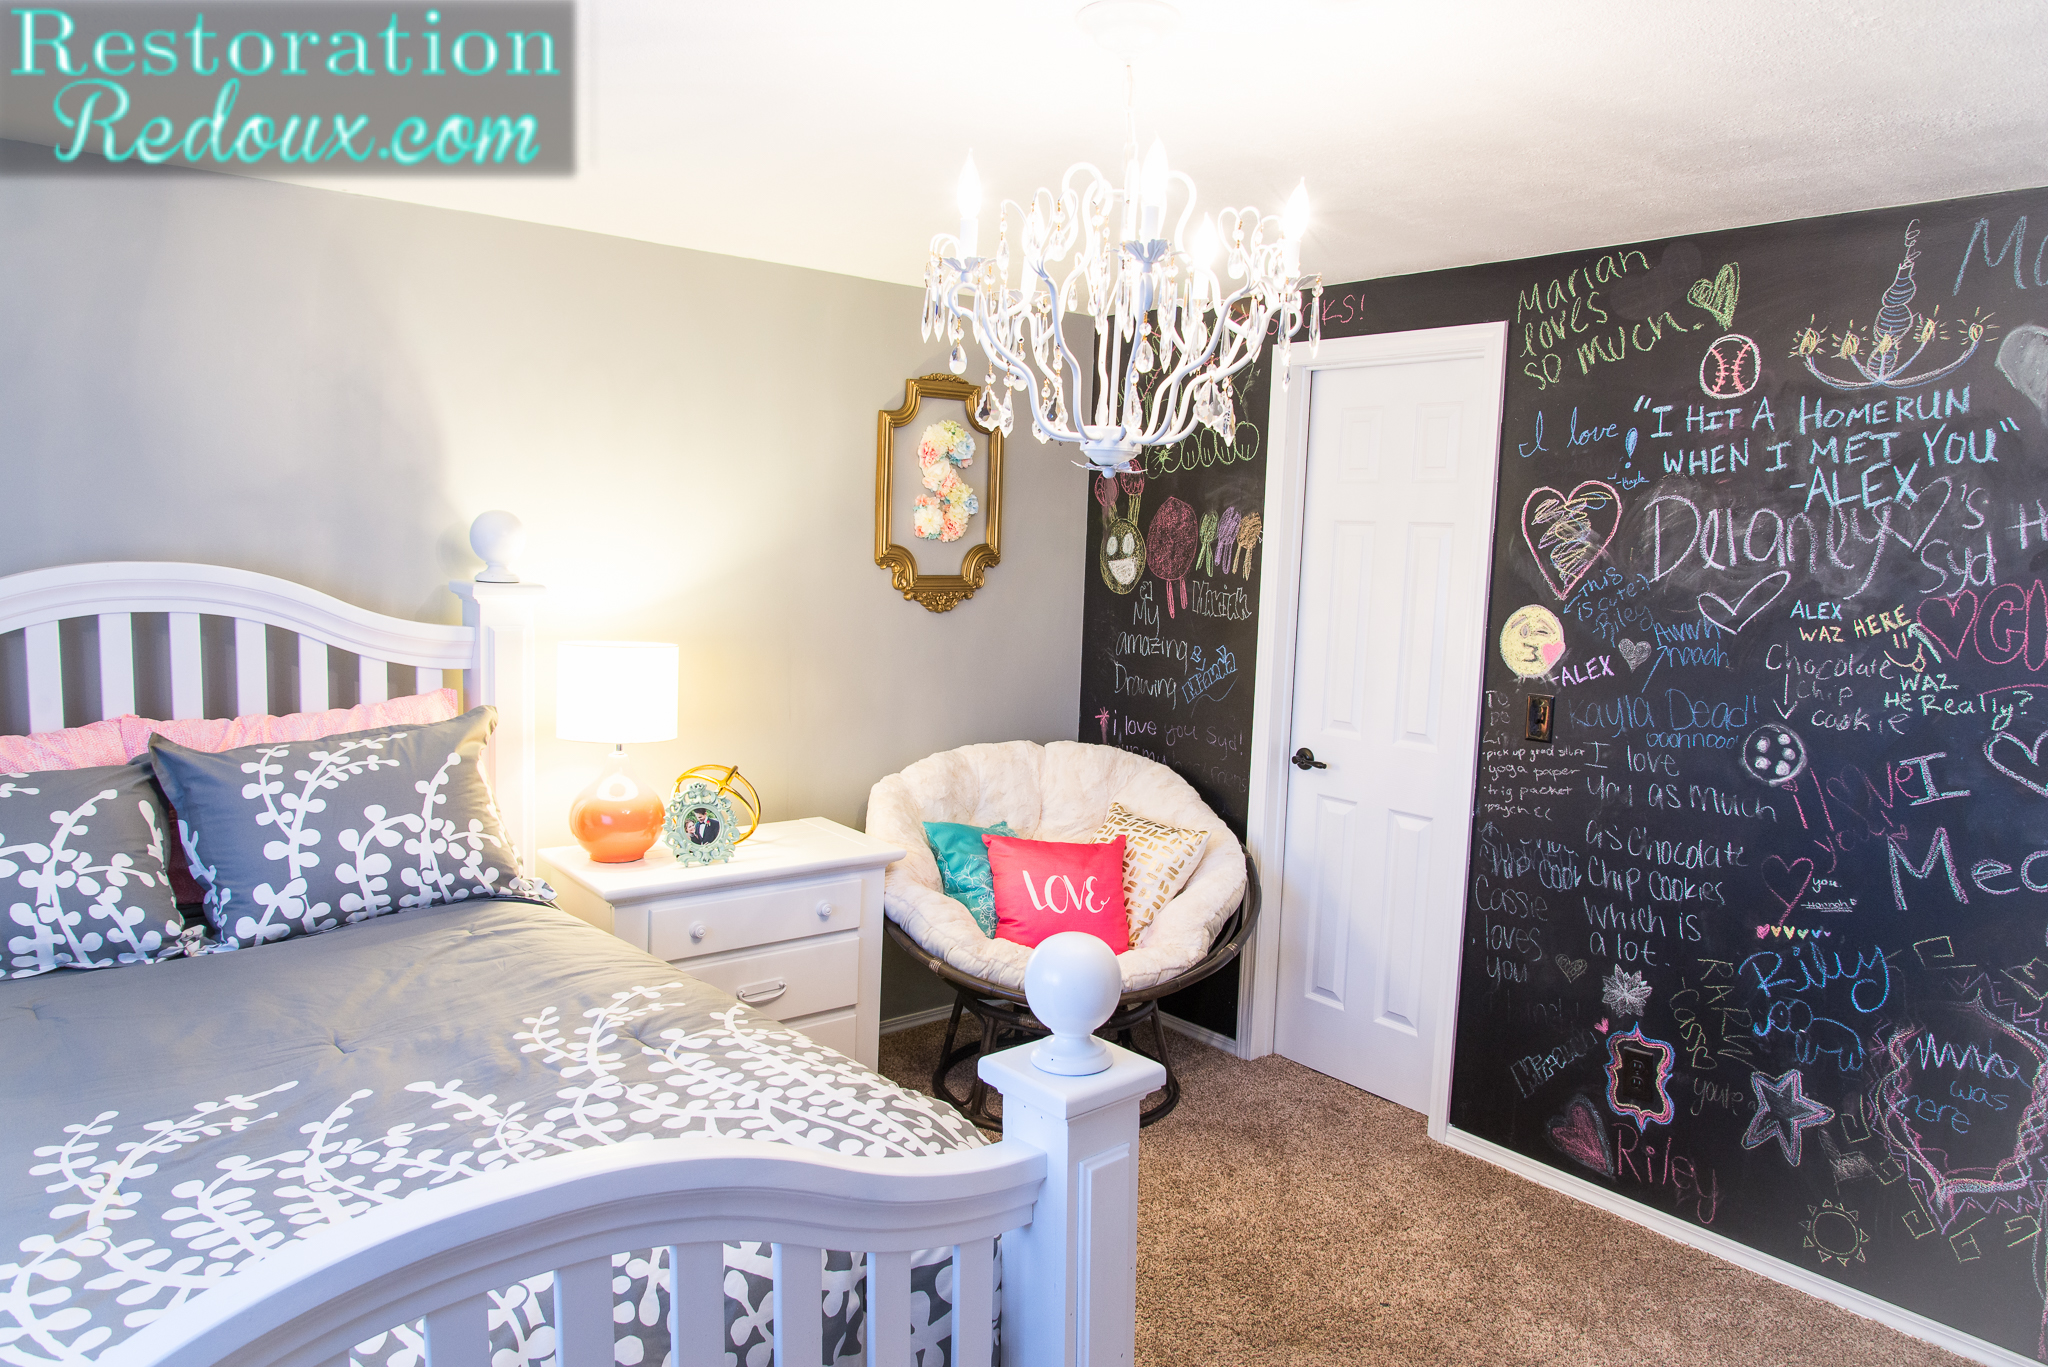 Teen Girl Bedroom Makeover - Daily Dose of Style